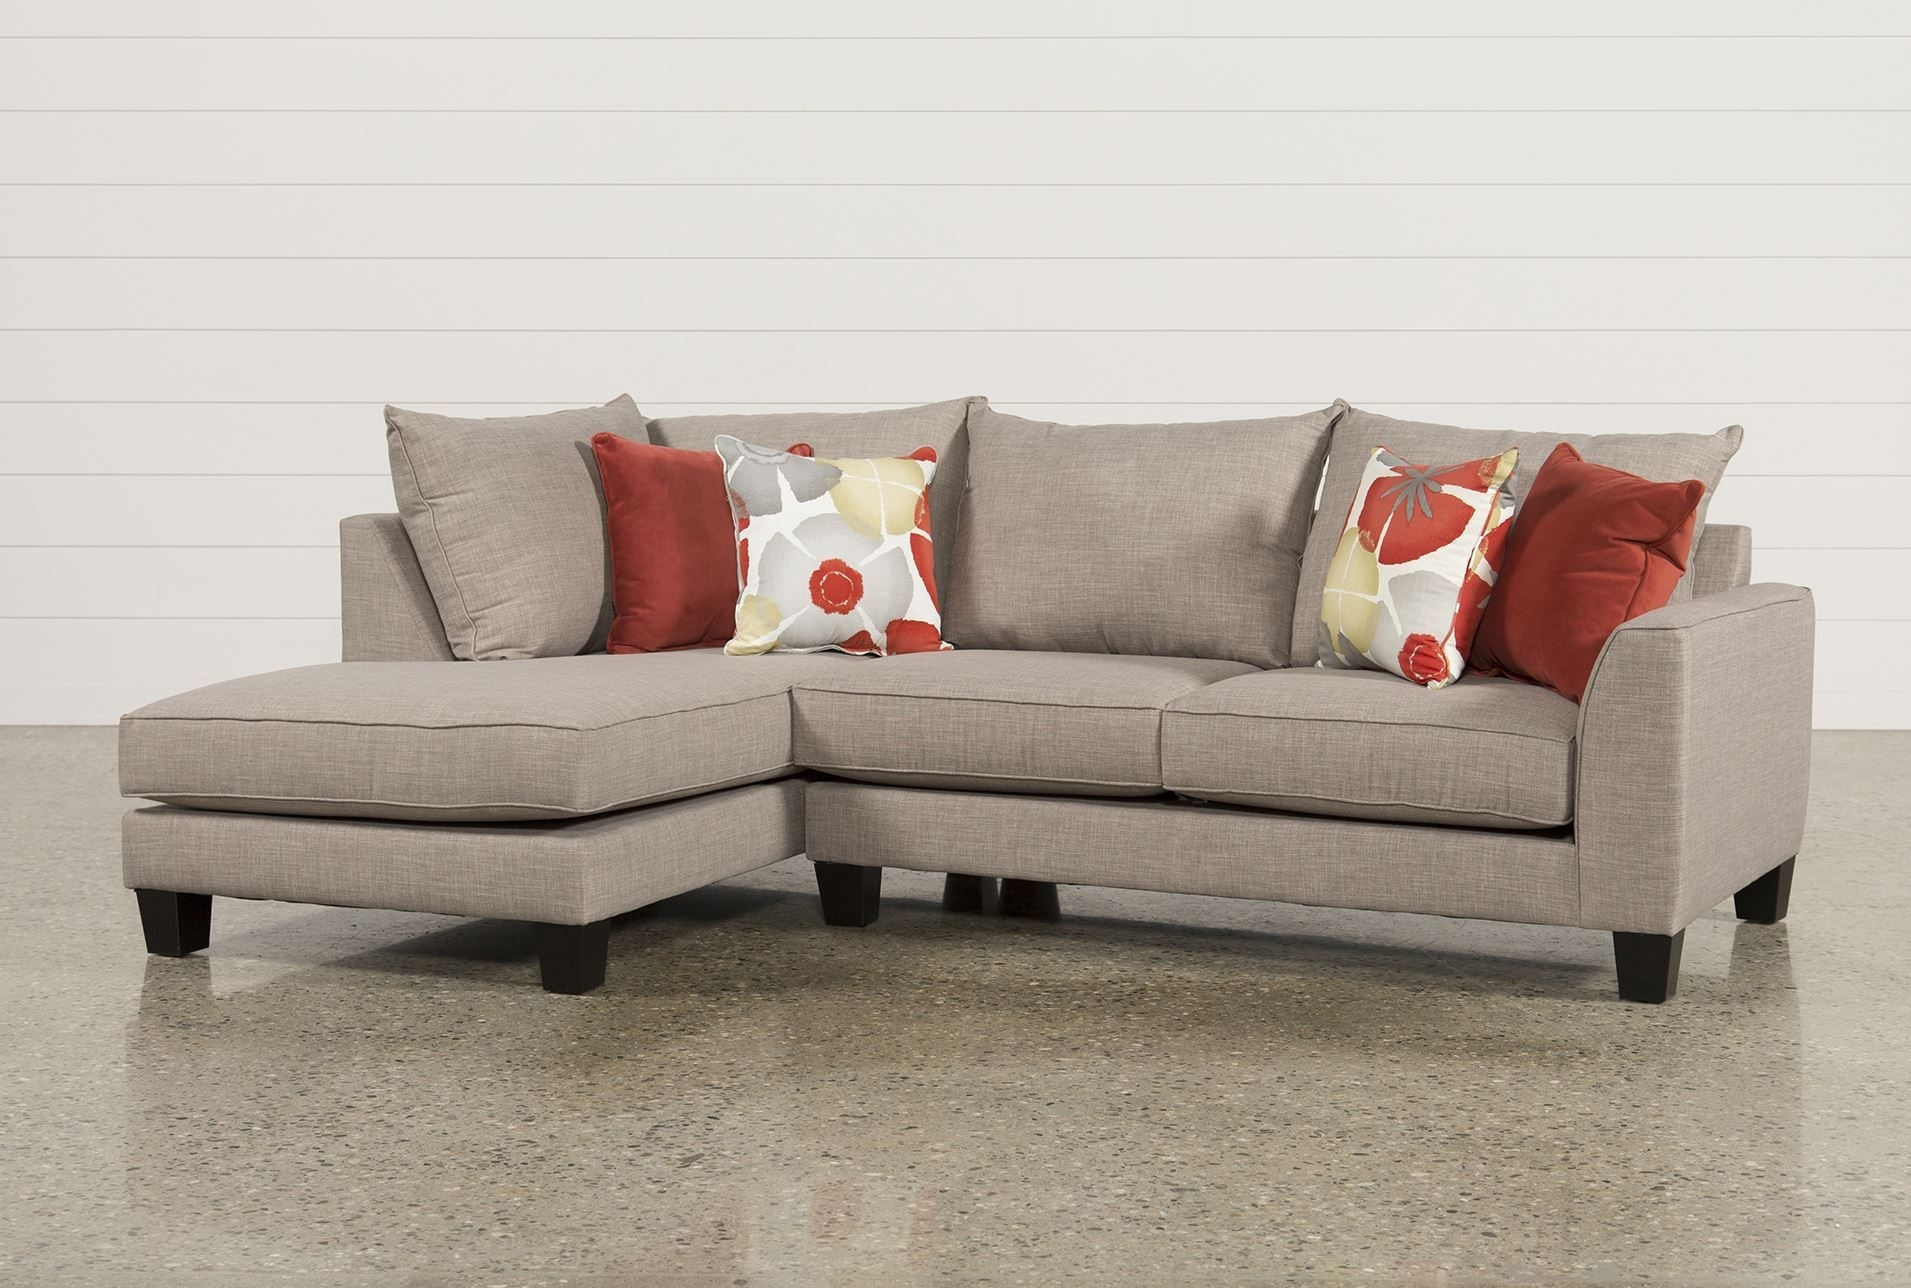 Ideas Of Laf Chaise On Kerri 2 Piece Sectional W Laf Chaise Living With Regard To Kerri 2 Piece Sectionals With Laf Chaise (View 9 of 25)